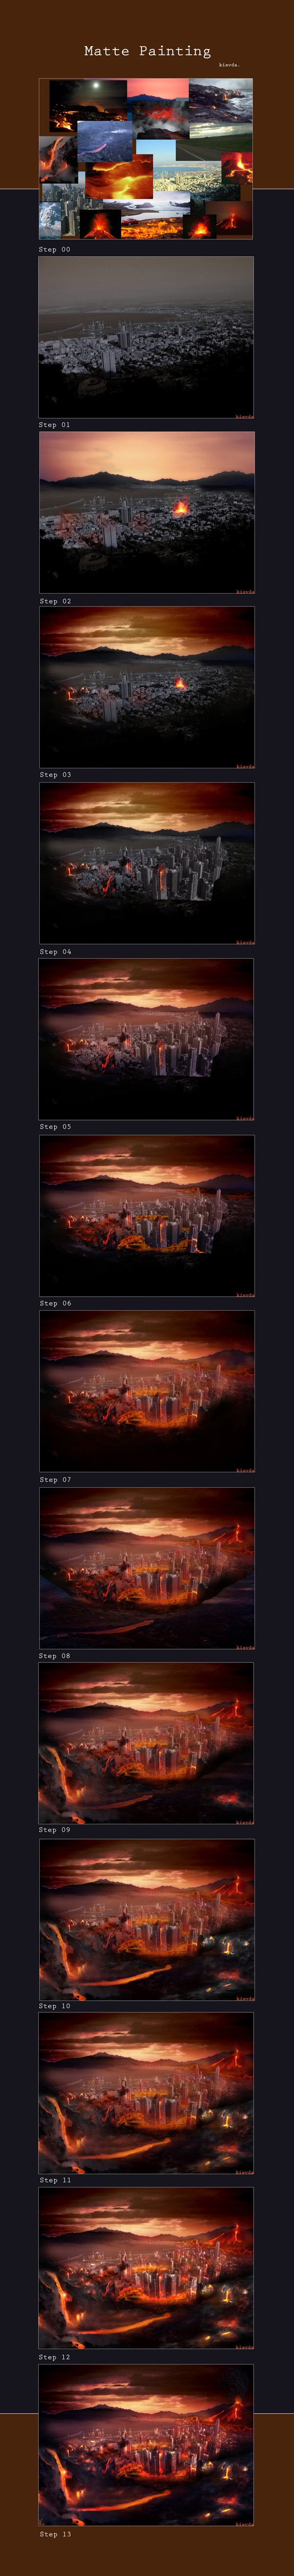 Matte_Painting_Tutorial_2_b